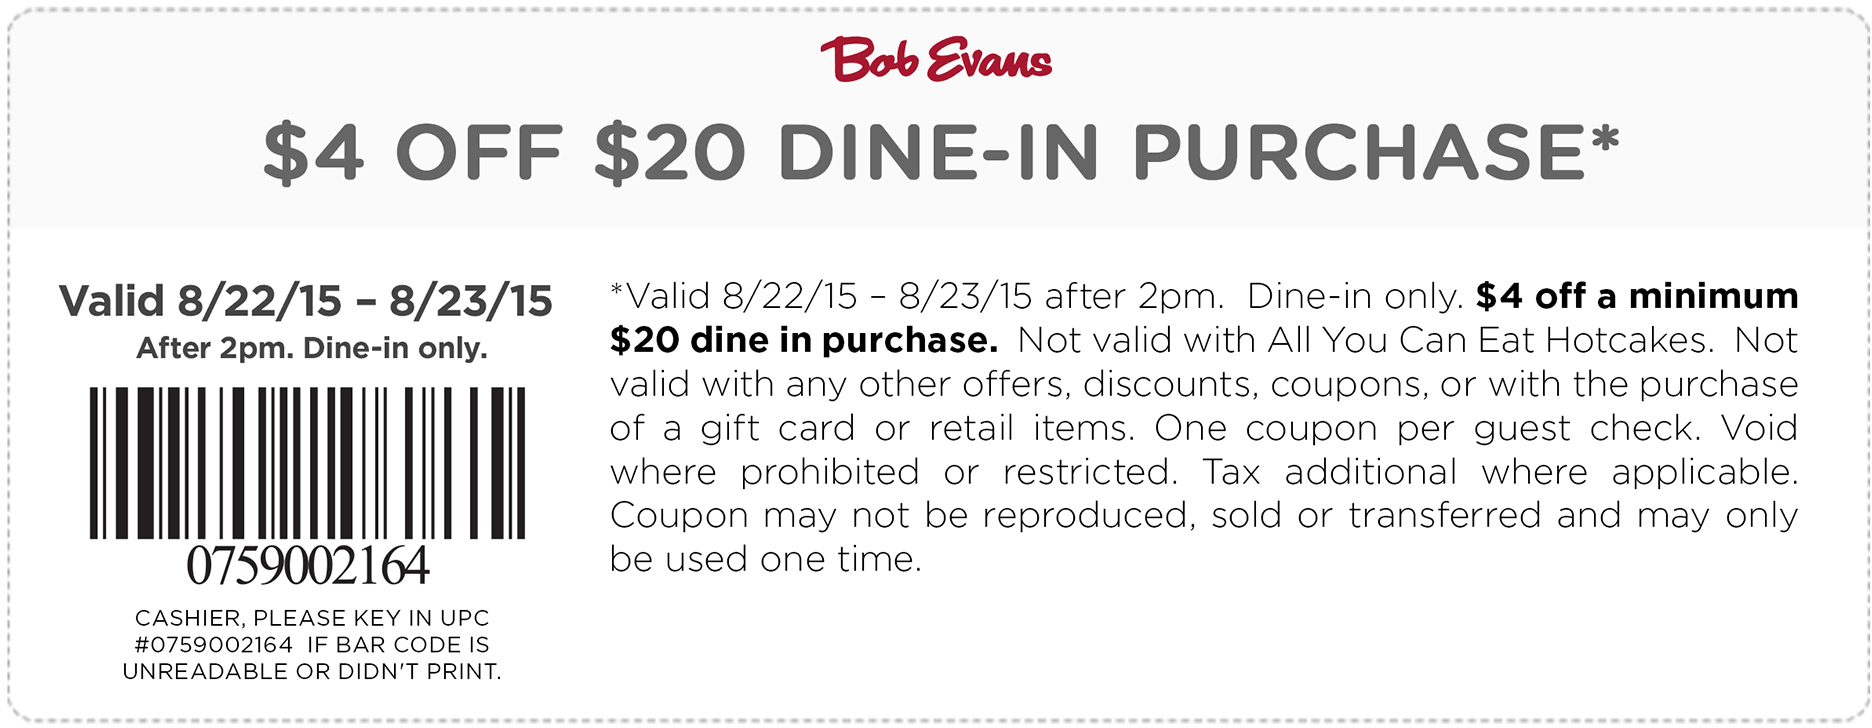 Bob Evans Coupon April 2017 $4 off $20 at Bob Evans restaurants